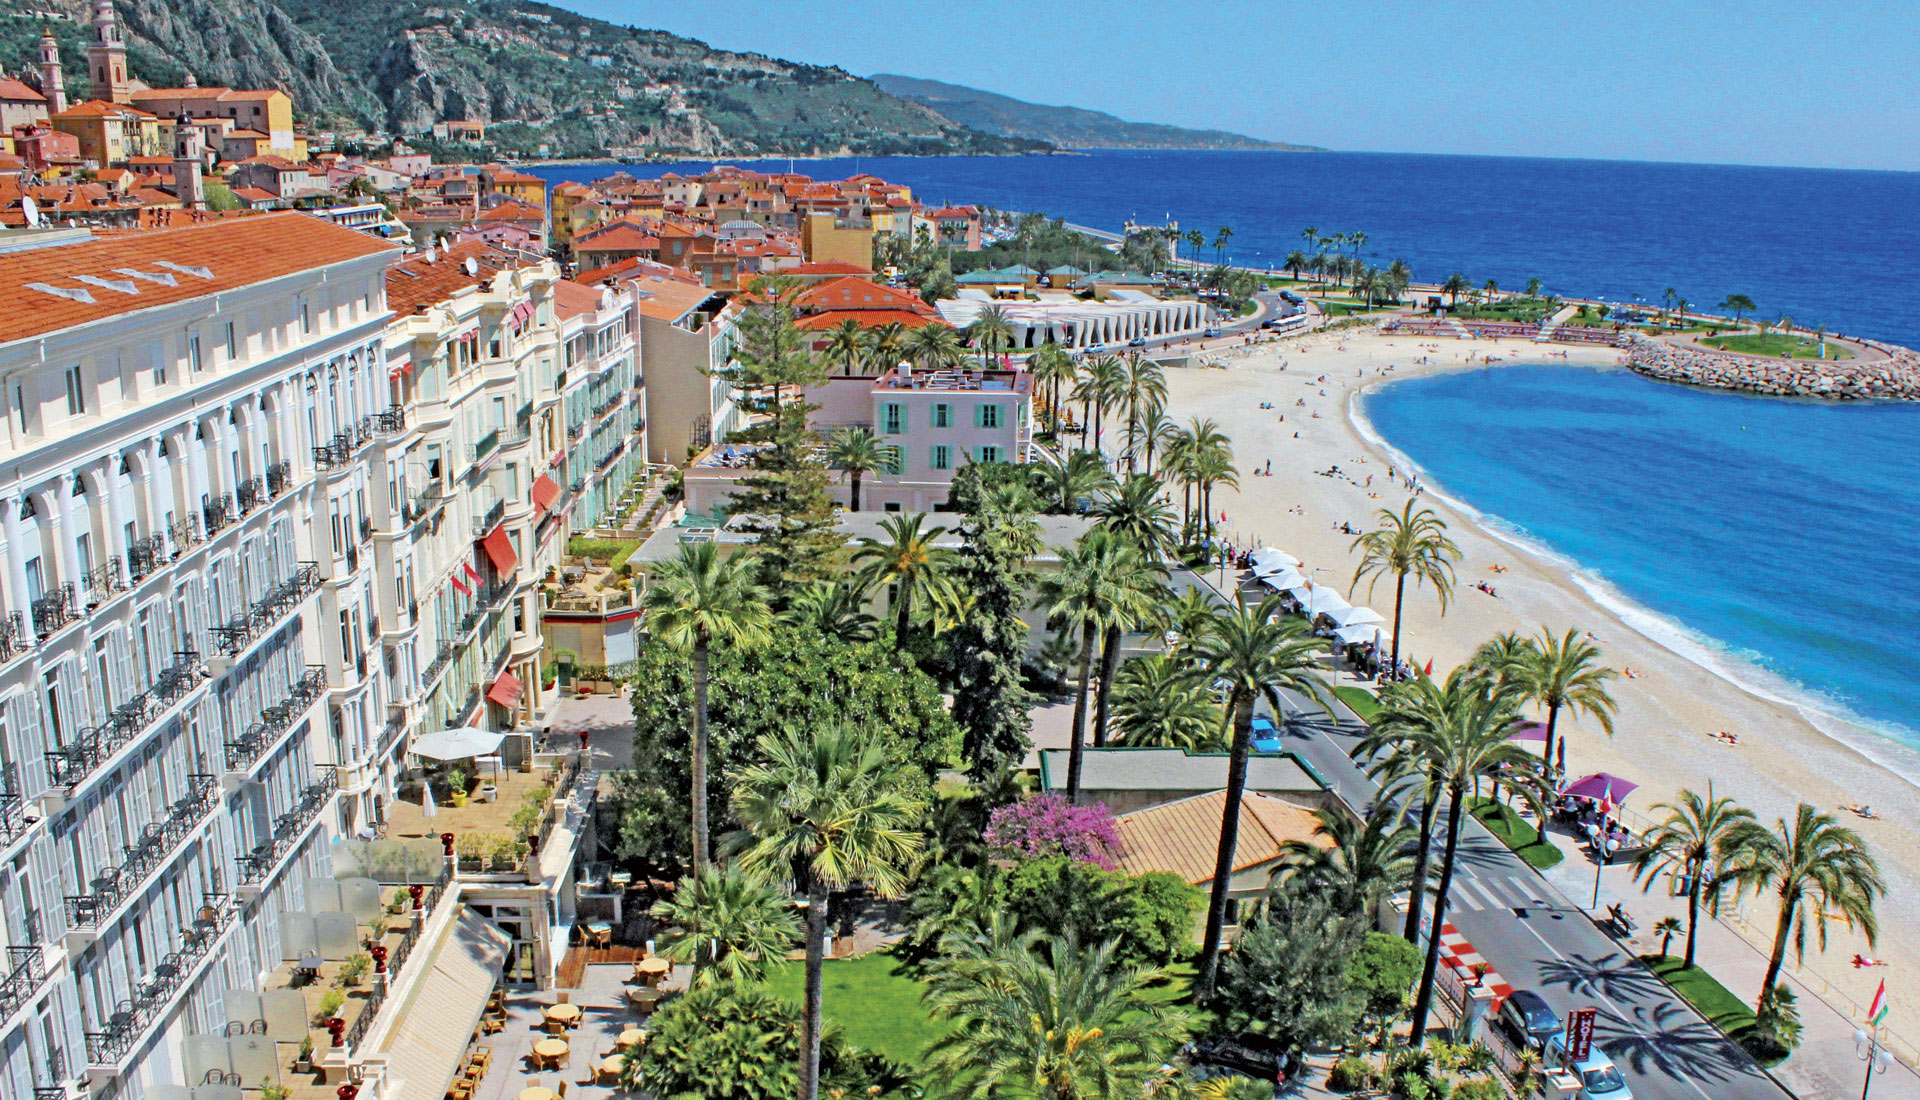 Menton France Lodging - The royal westminster perfect 3 stars hotel for a last minute week end